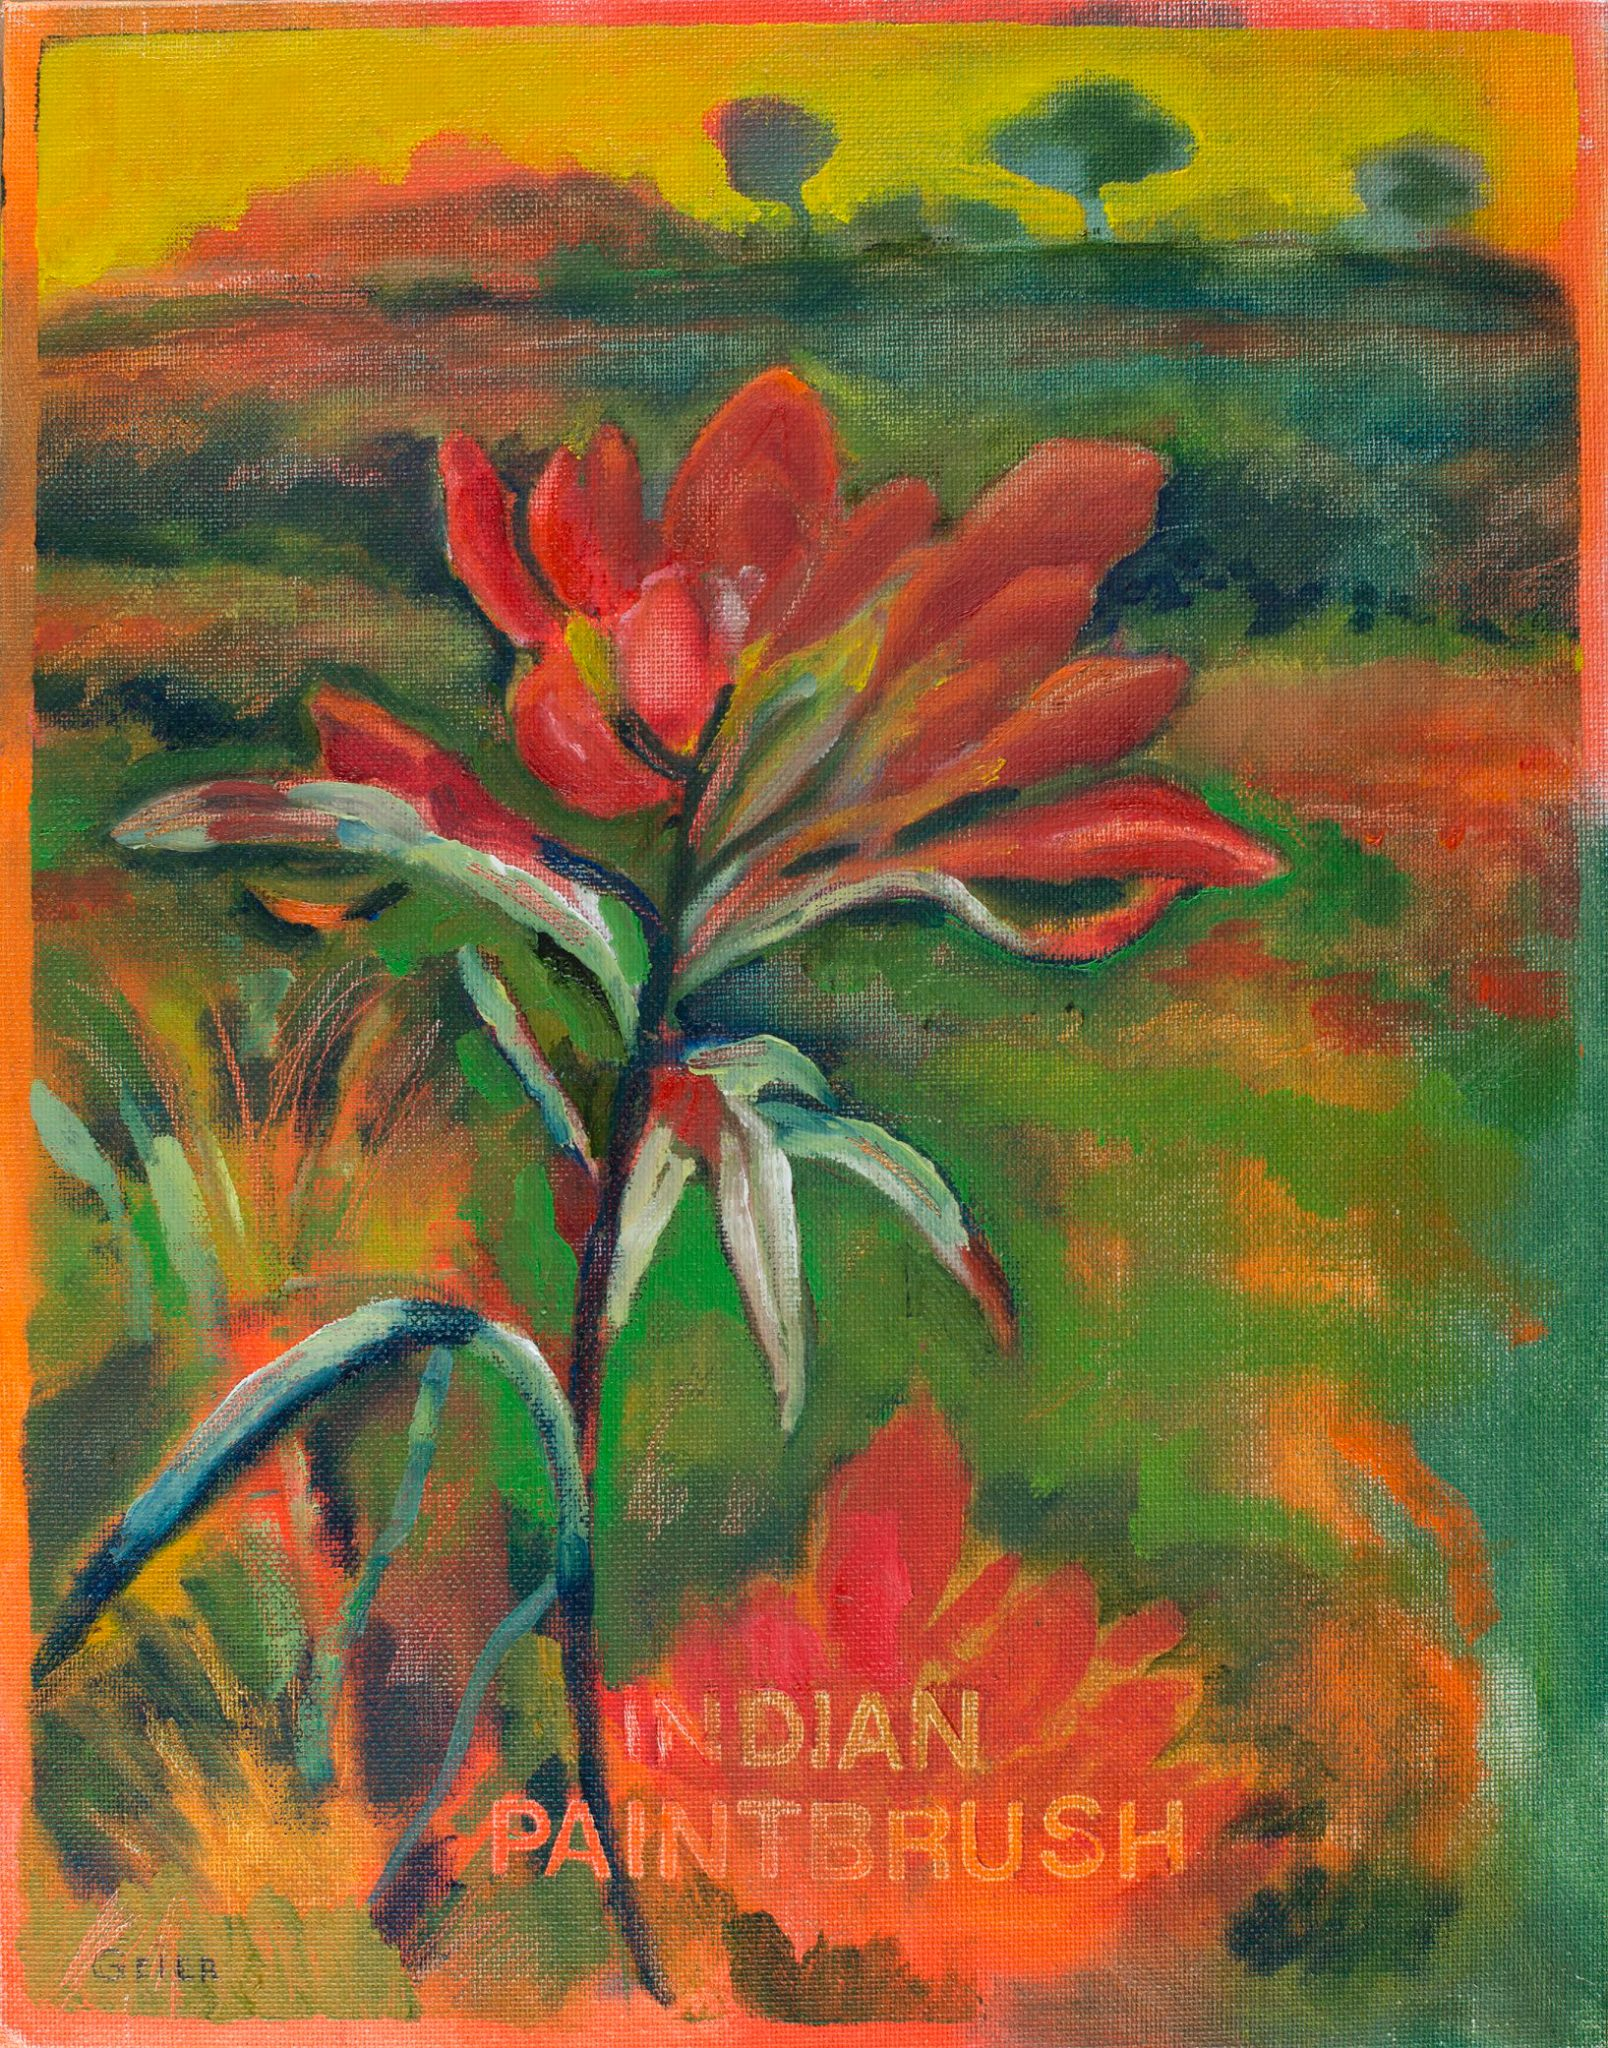 glicee_indian_paintbrush.jpg